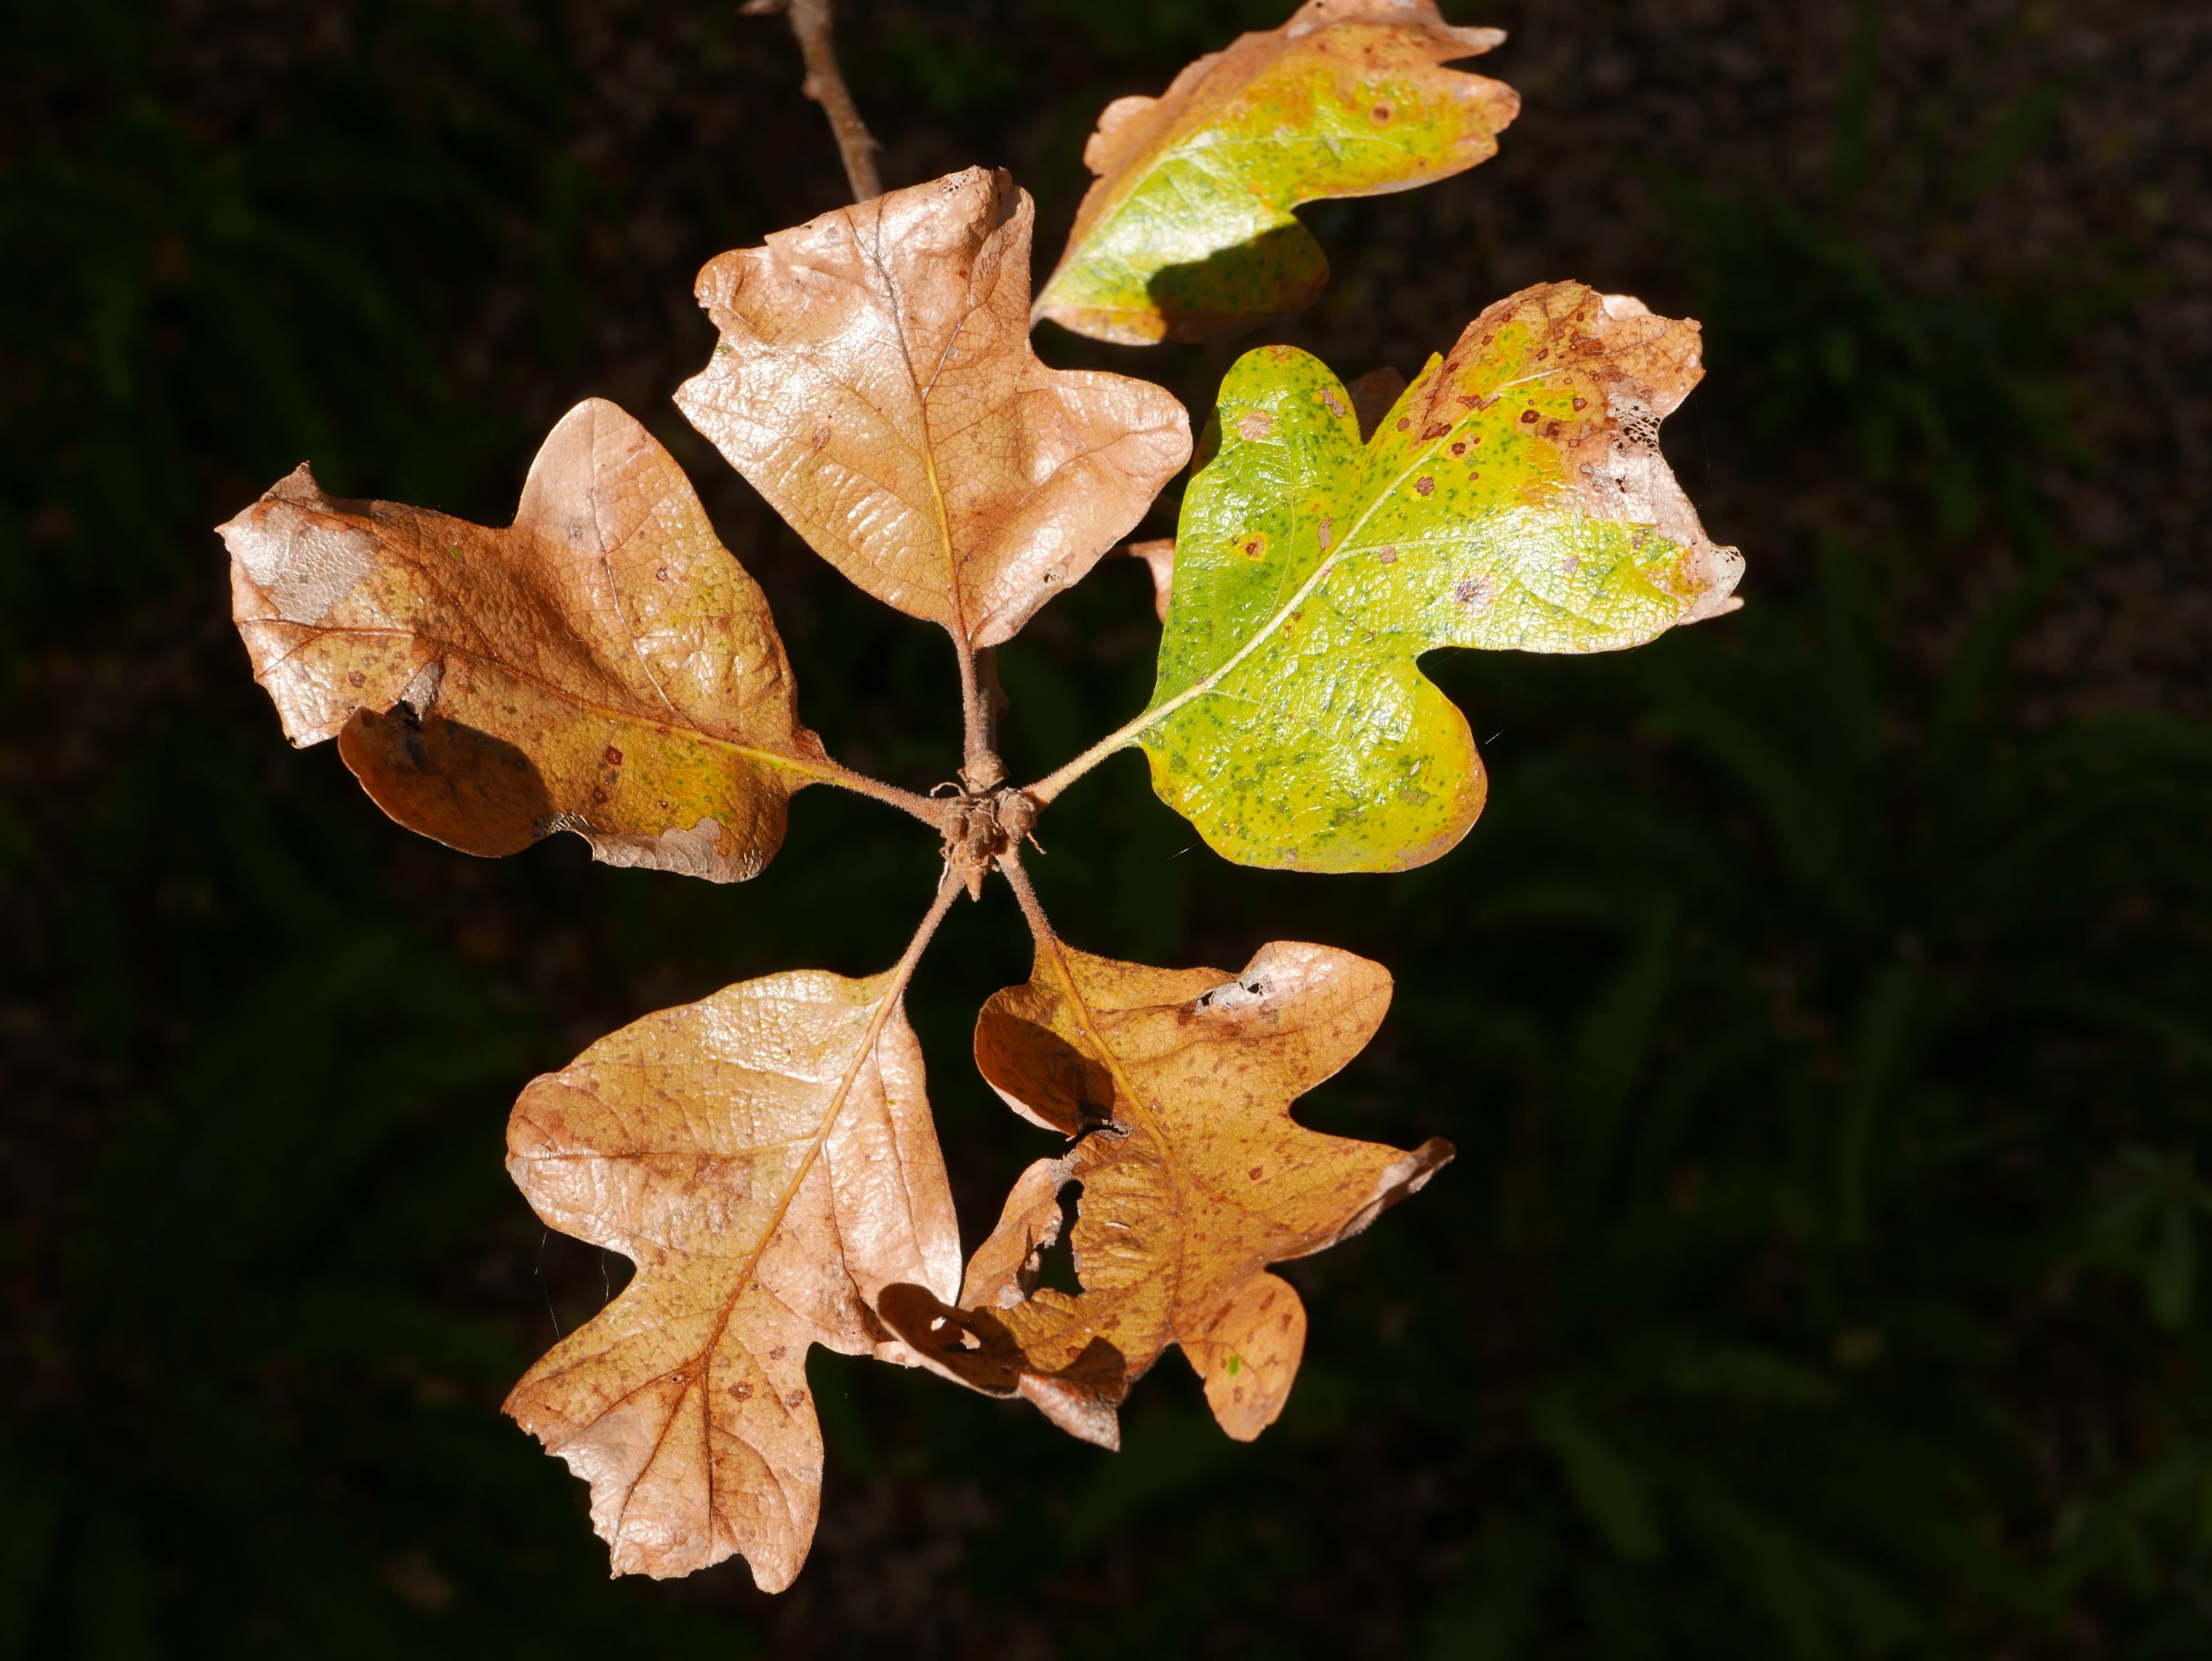 Brown and green oak leaves